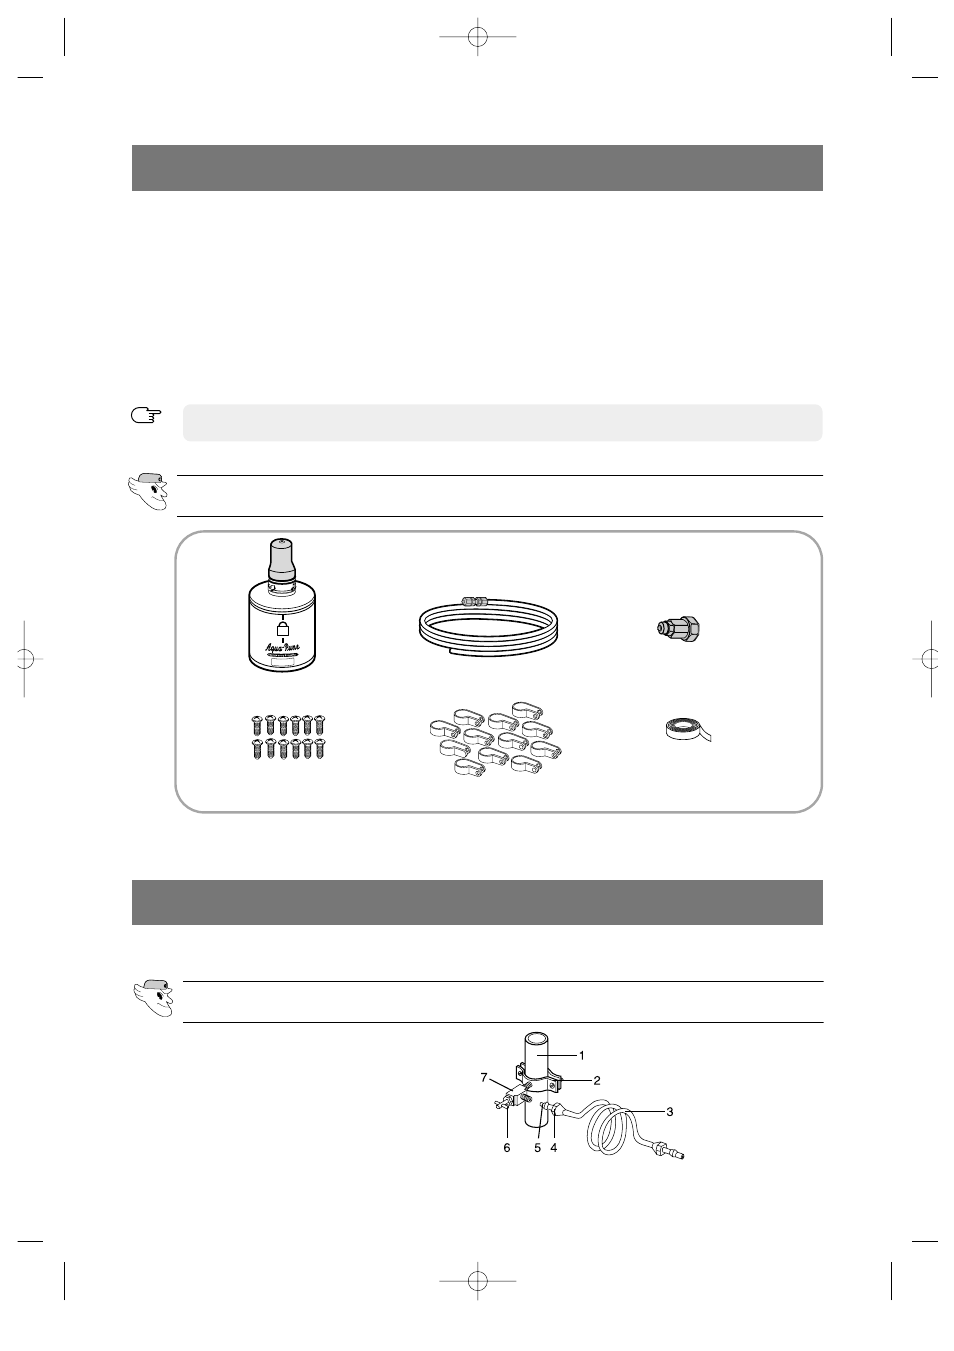 Checking The Water Dispenser Line Optional Installing Of Sub Zero Ice Maker Wiring Diagram